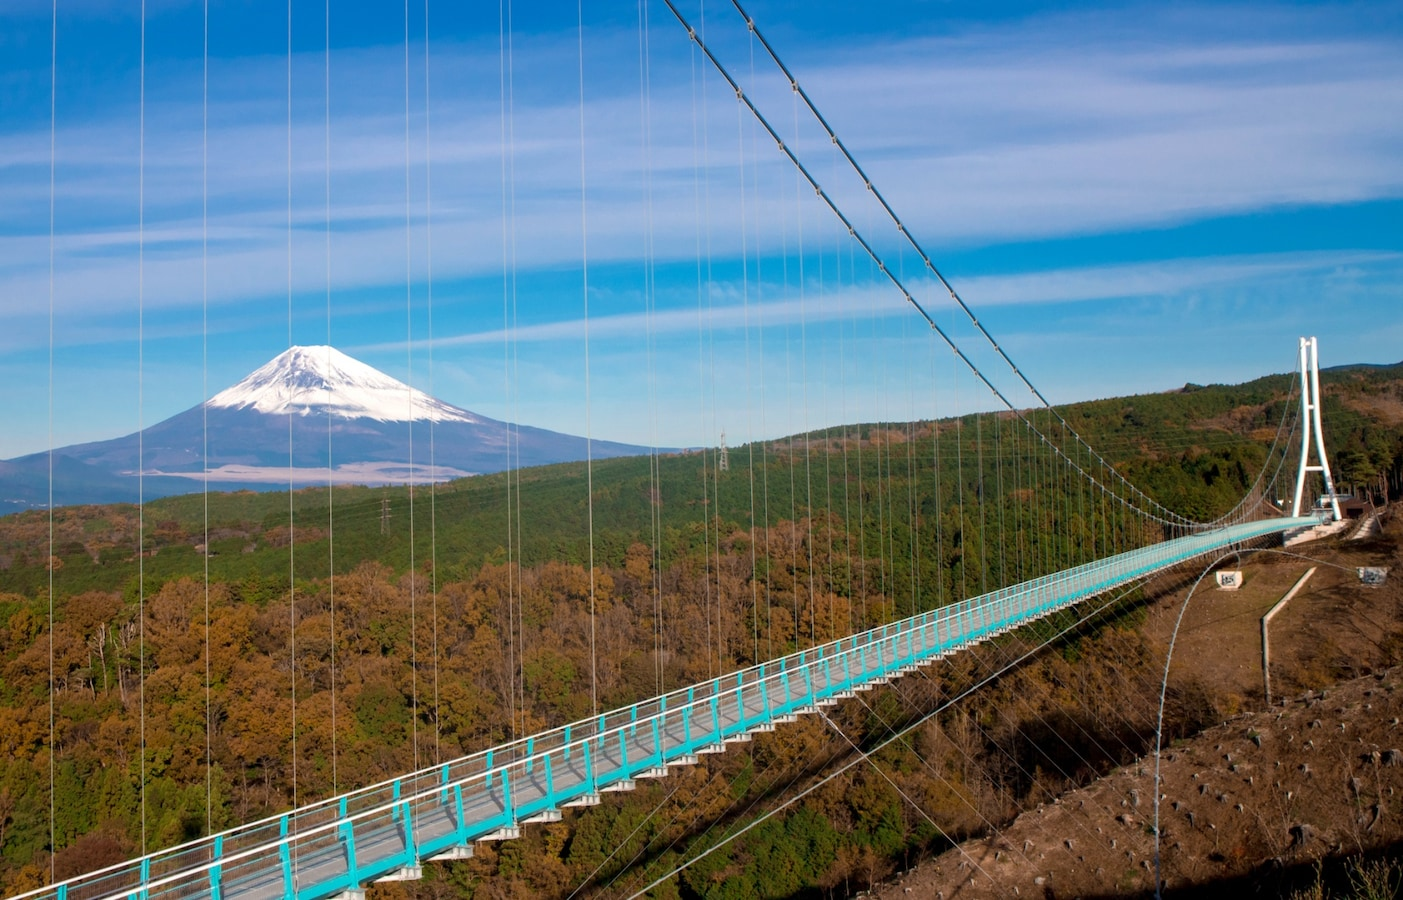 Mishima Skywalk All About Japan